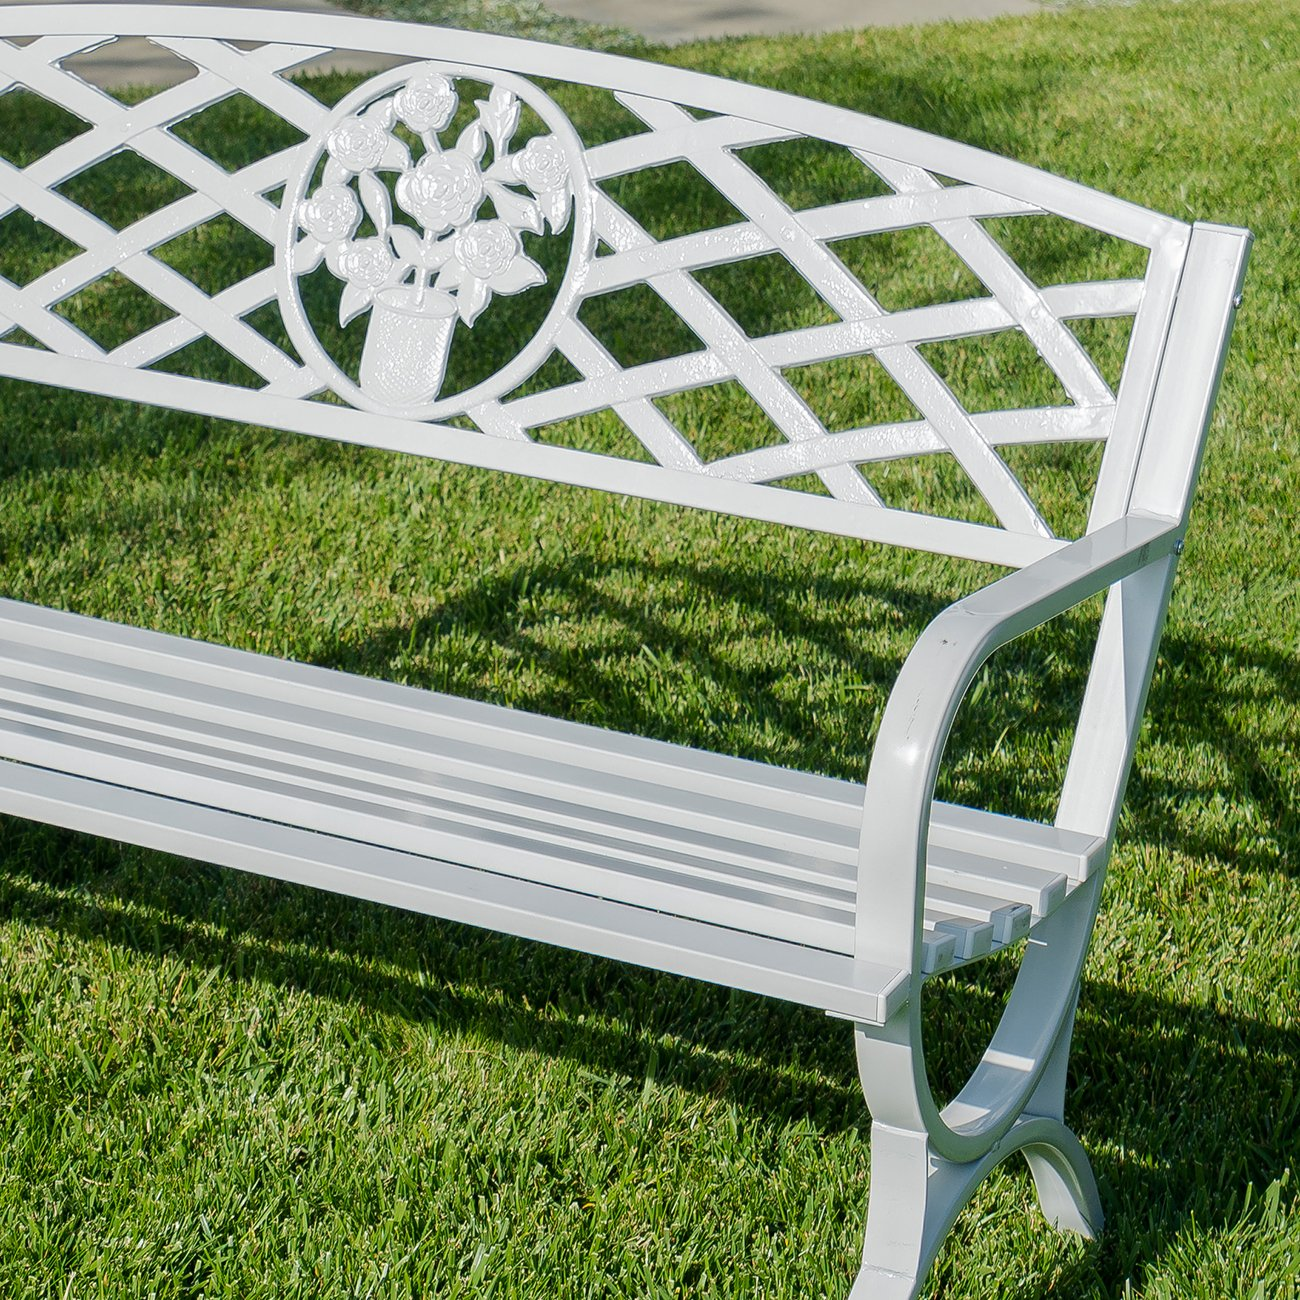 Belleze 50'' inch Outdoor Park Bench Garden Backyard Furniture Chair Porch Seat Steel Frame, White by Belleze (Image #6)